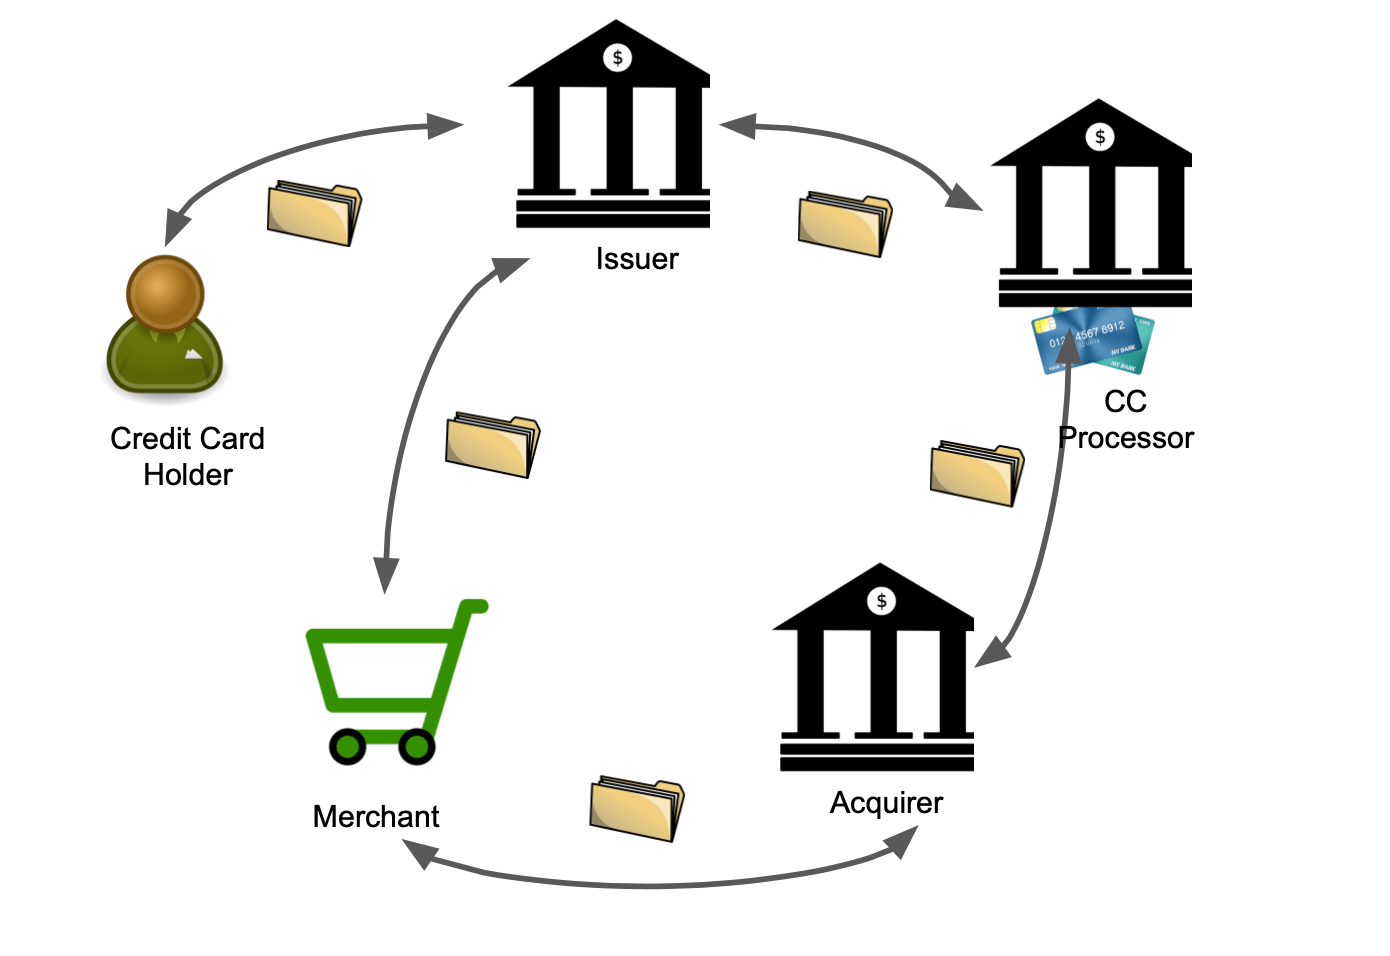 hight resolution of the basic steps are 1 the credit card